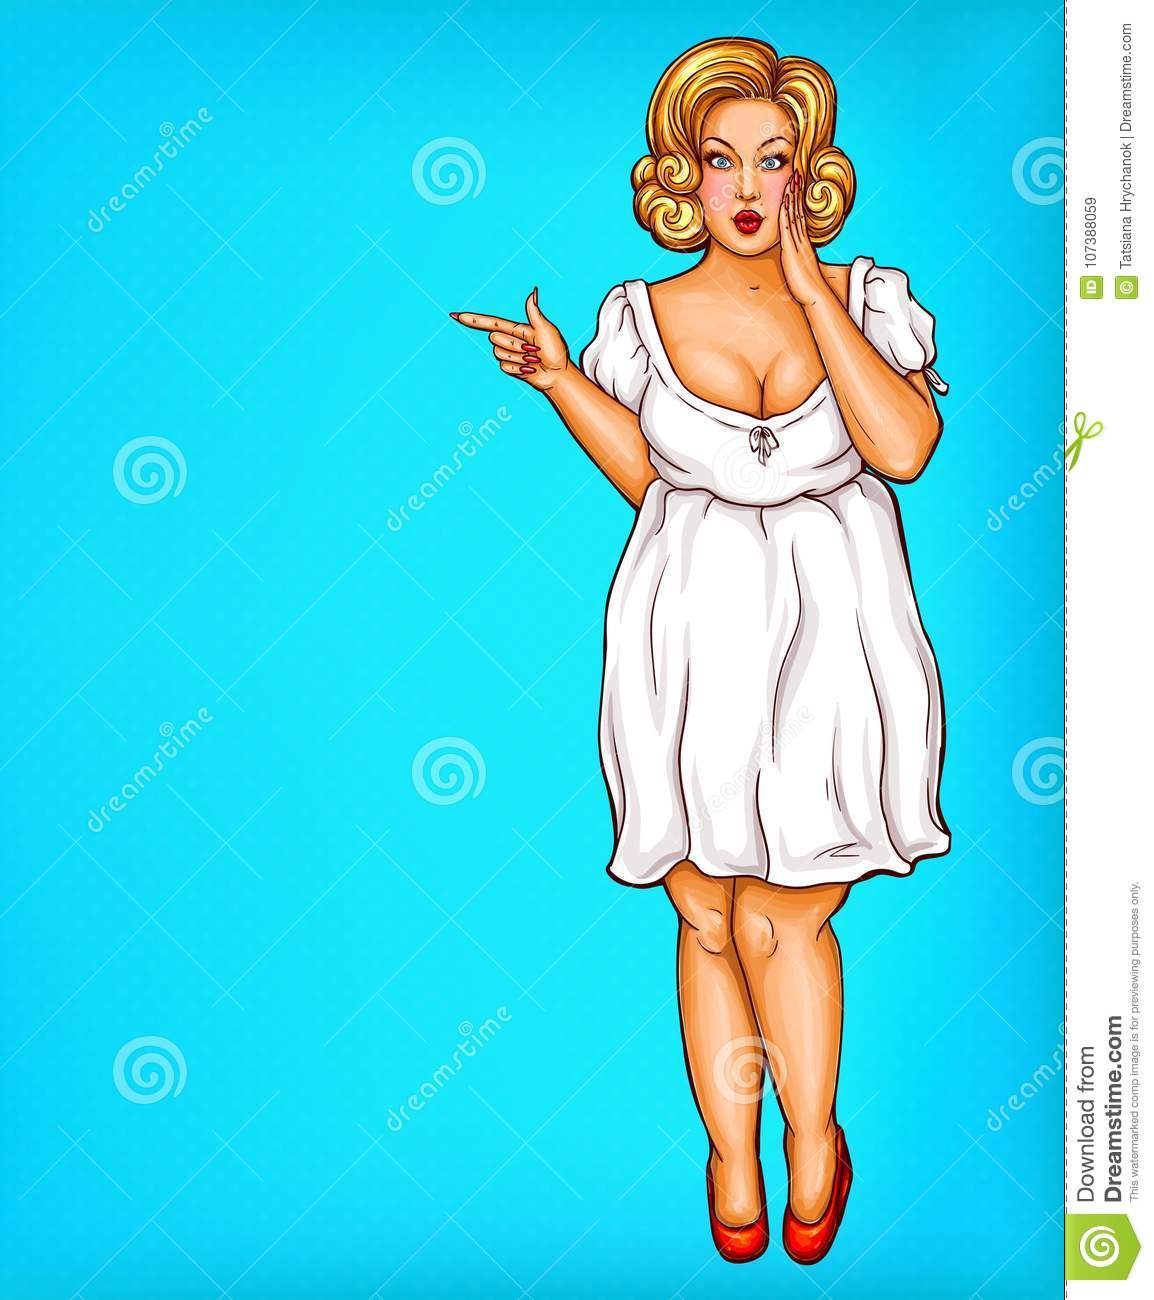 80e40b156e2c8 vector-fat-obese-blonde-pin-up-woman-pop-art-plus-size-model-white-dress -pointing-finger-discounts-sale-fashion-107388059.jpg